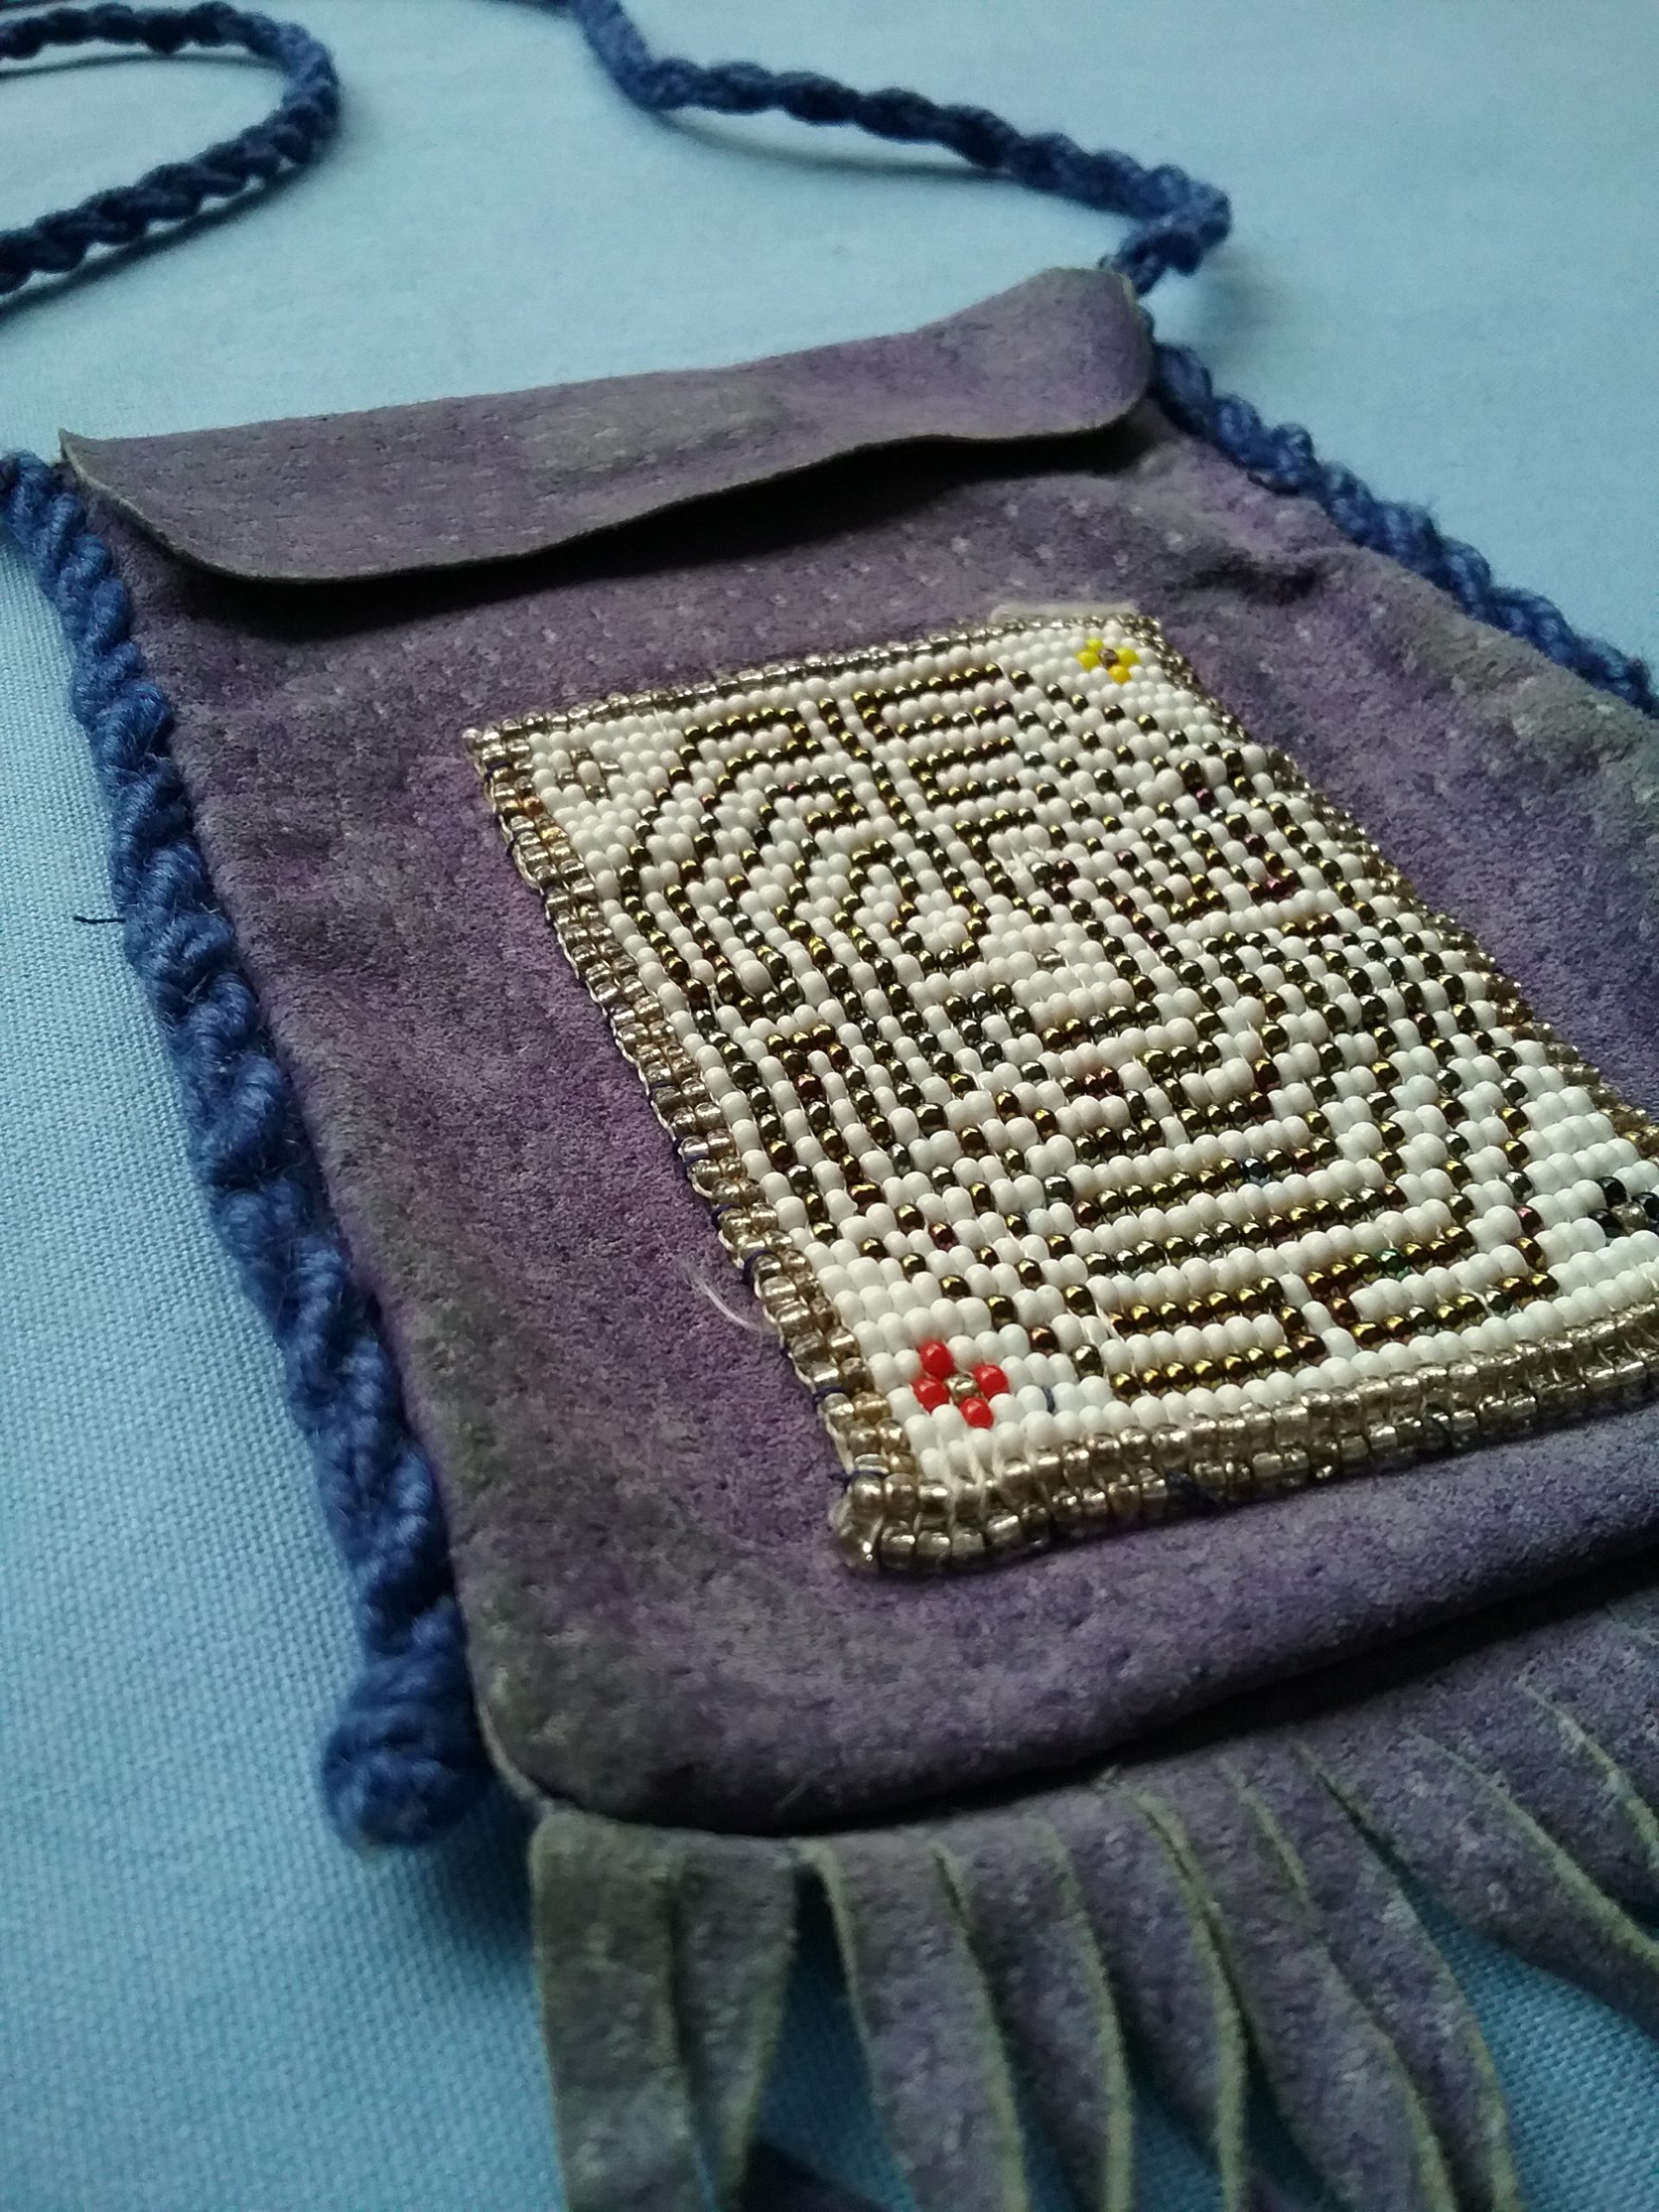 Detail of the Baby Chartres bag made by Sister Carol Schmit. On loan from Sister Carol Schmit, OSF.